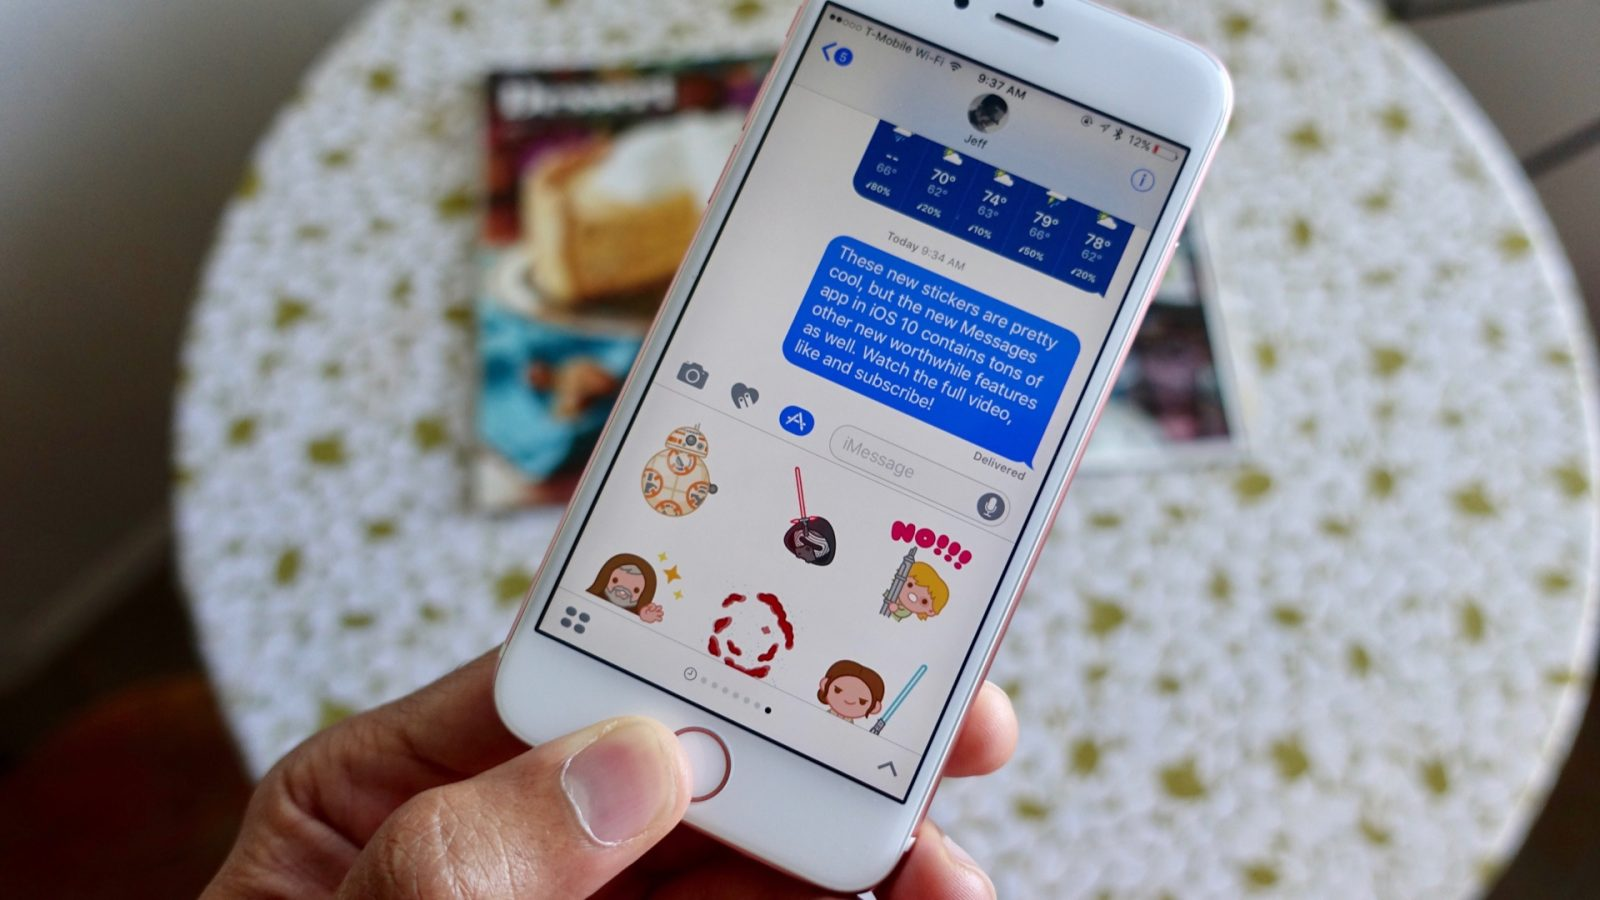 How to remove a user from a group iMessage chat on iPhone - 9to5Mac